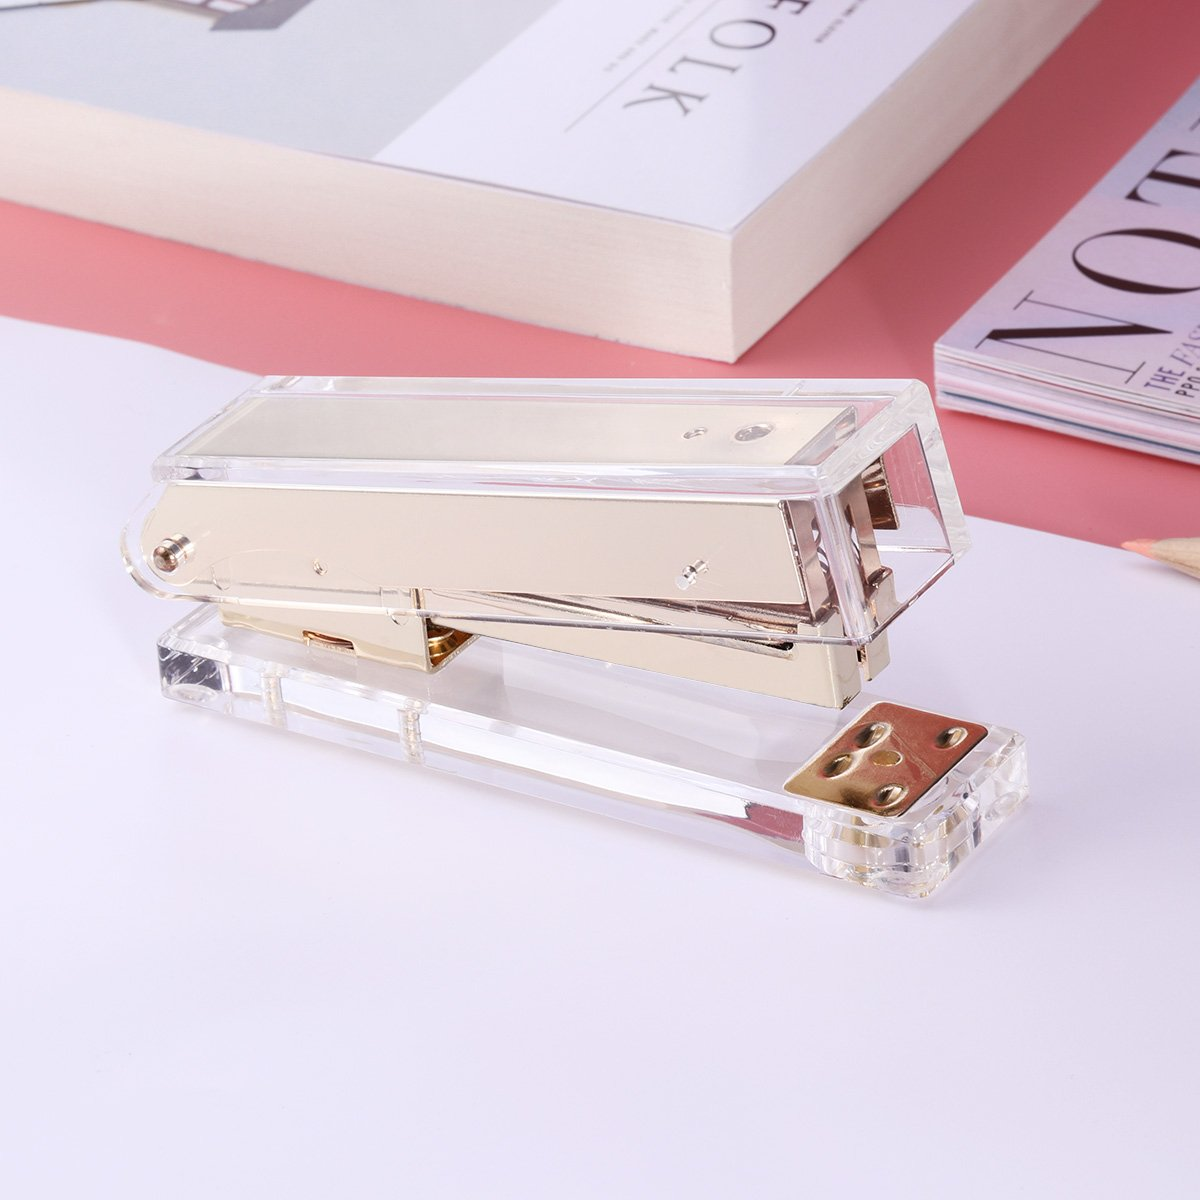 TOYMYTOY Acrylic Clear Desktop Staplers,Classic Desk Staplers for Office, School Use (Gold) by TOYMYTOY (Image #6)